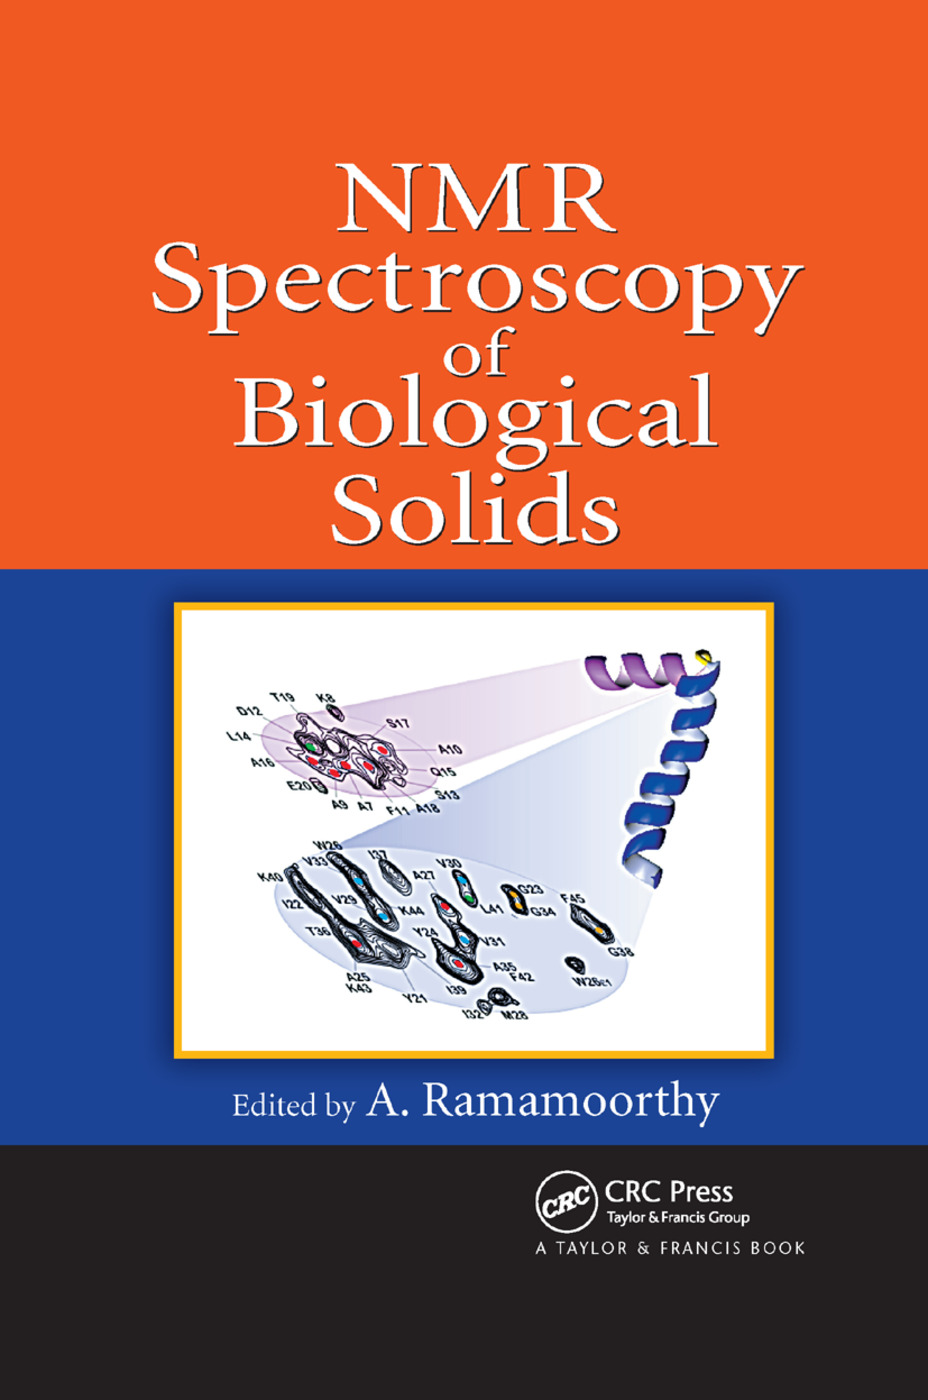 NMR Spectroscopy of Biological Solids: 1st Edition (Paperback) book cover